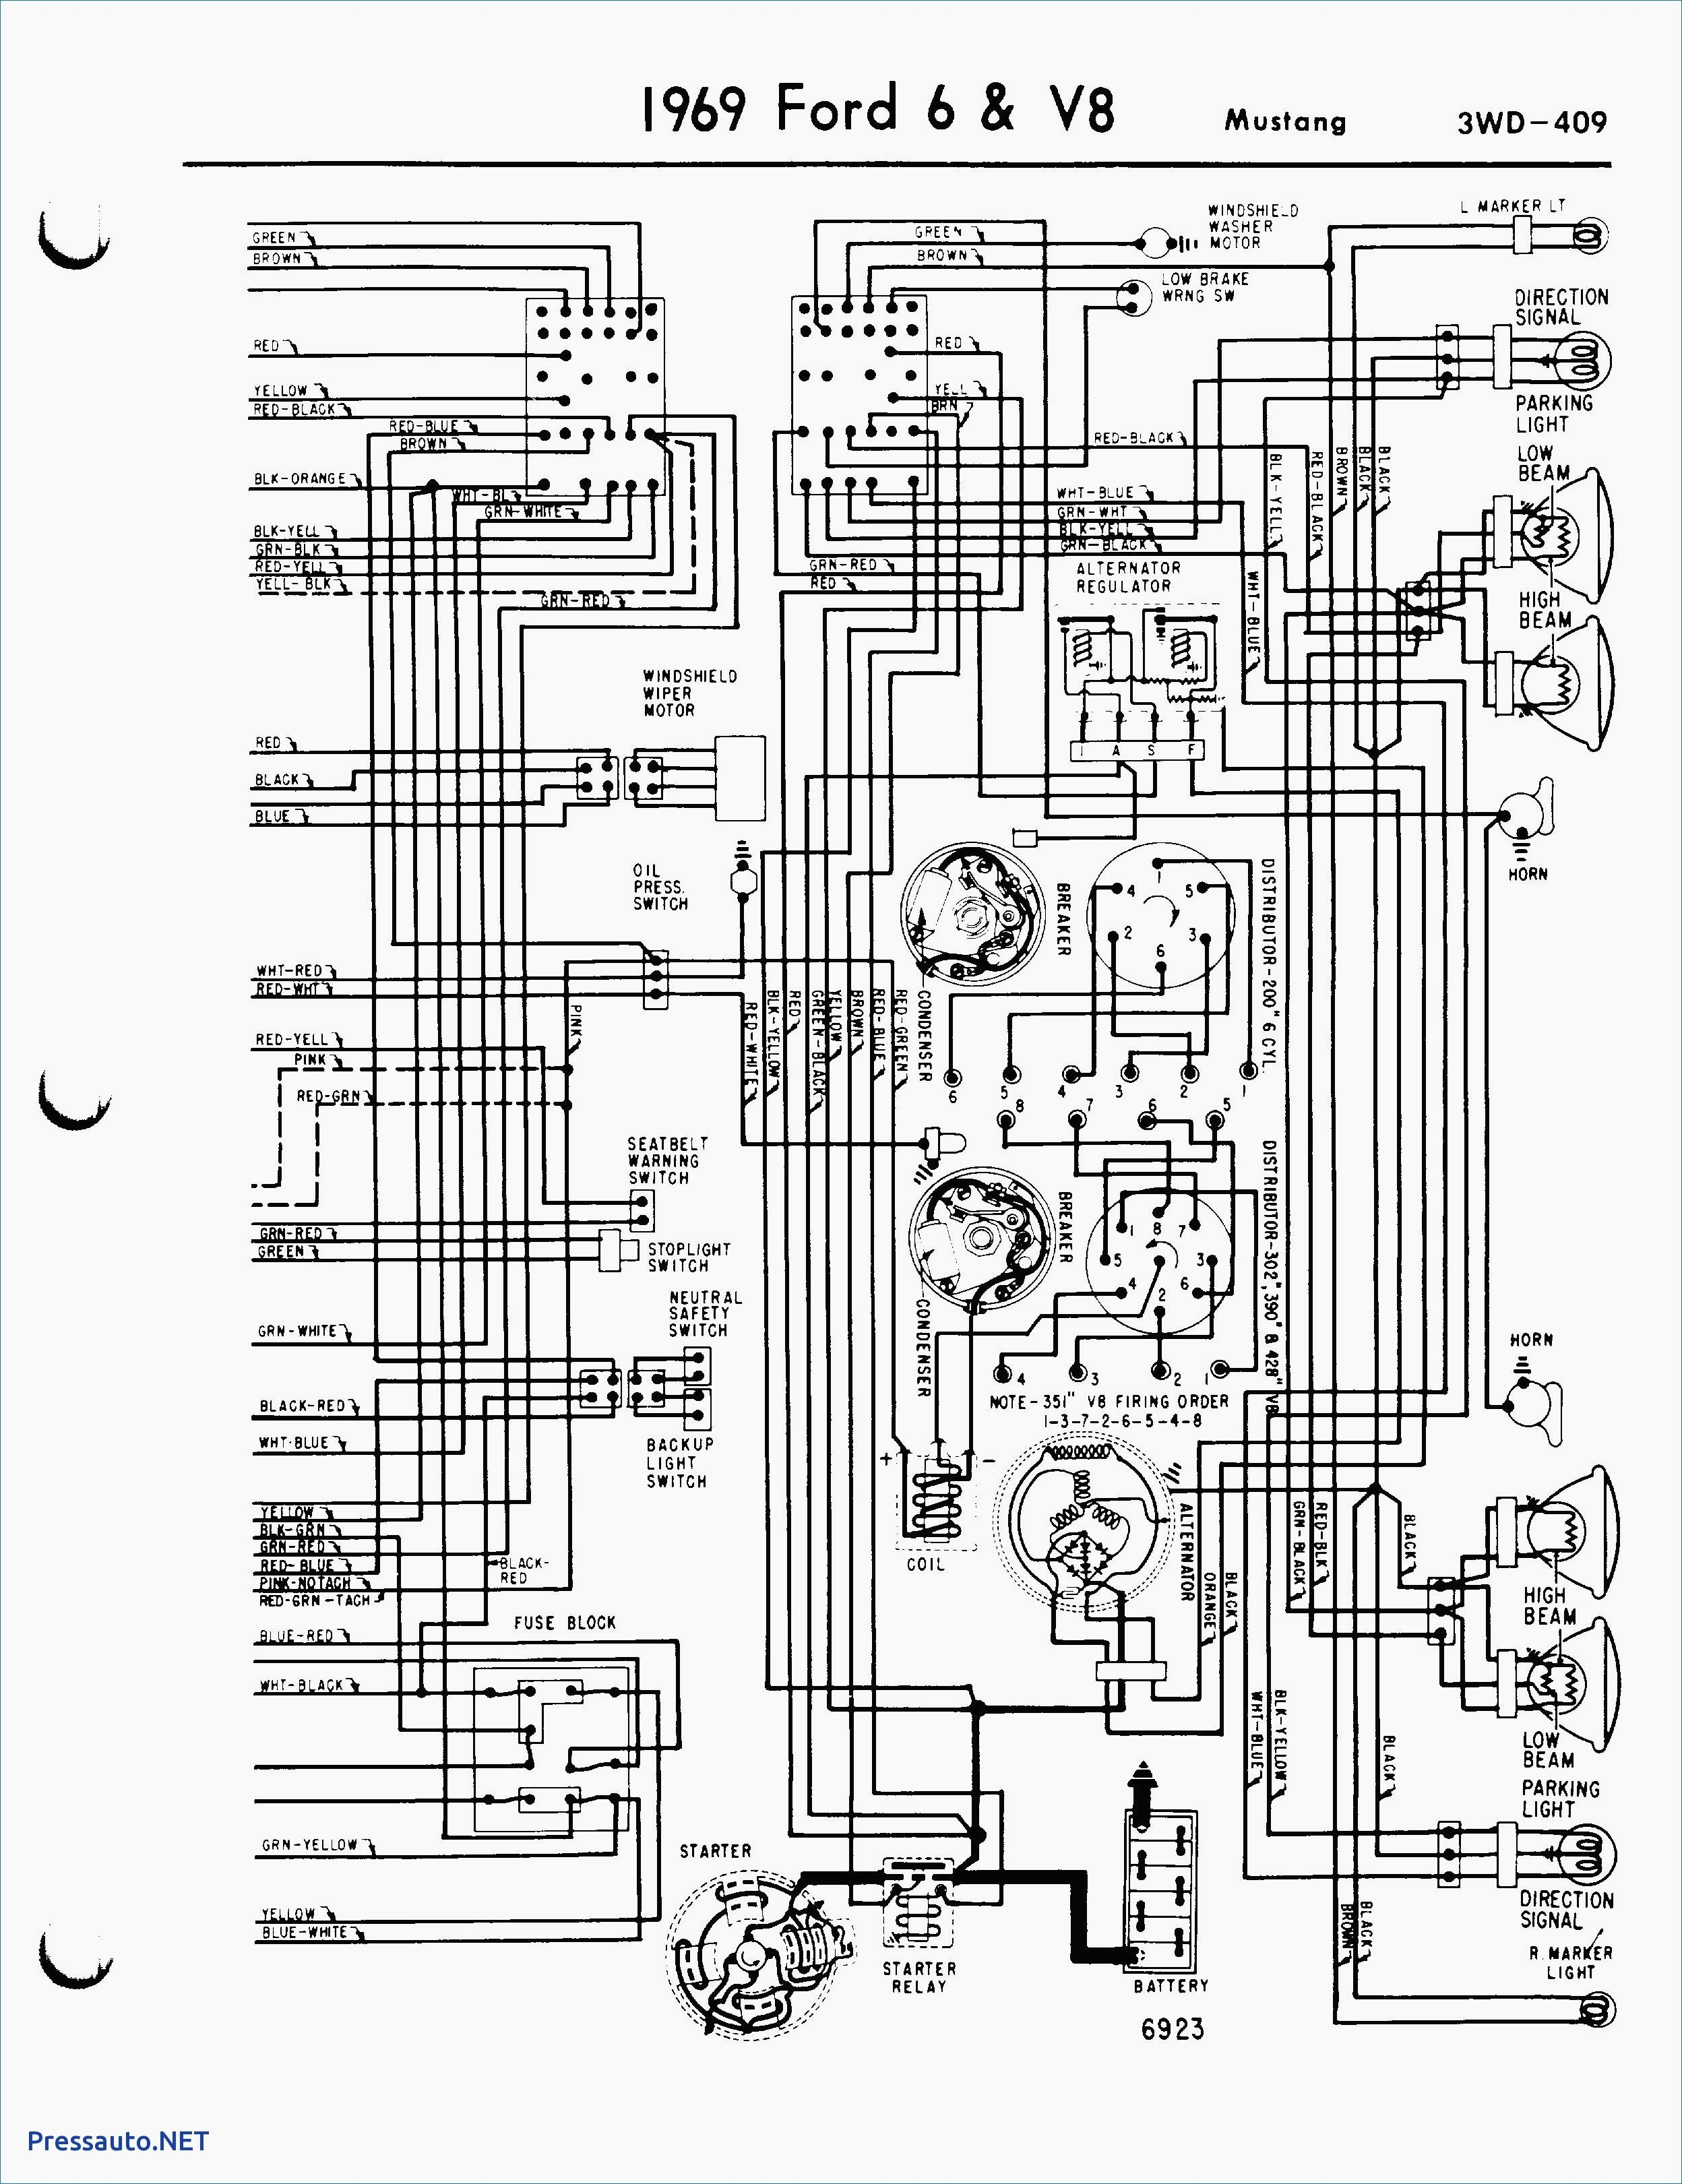 Bmw Alternator Wiring Diagram E46 Belt Com A 2003 M5 Engine E39 Valid U0026 6 Volt